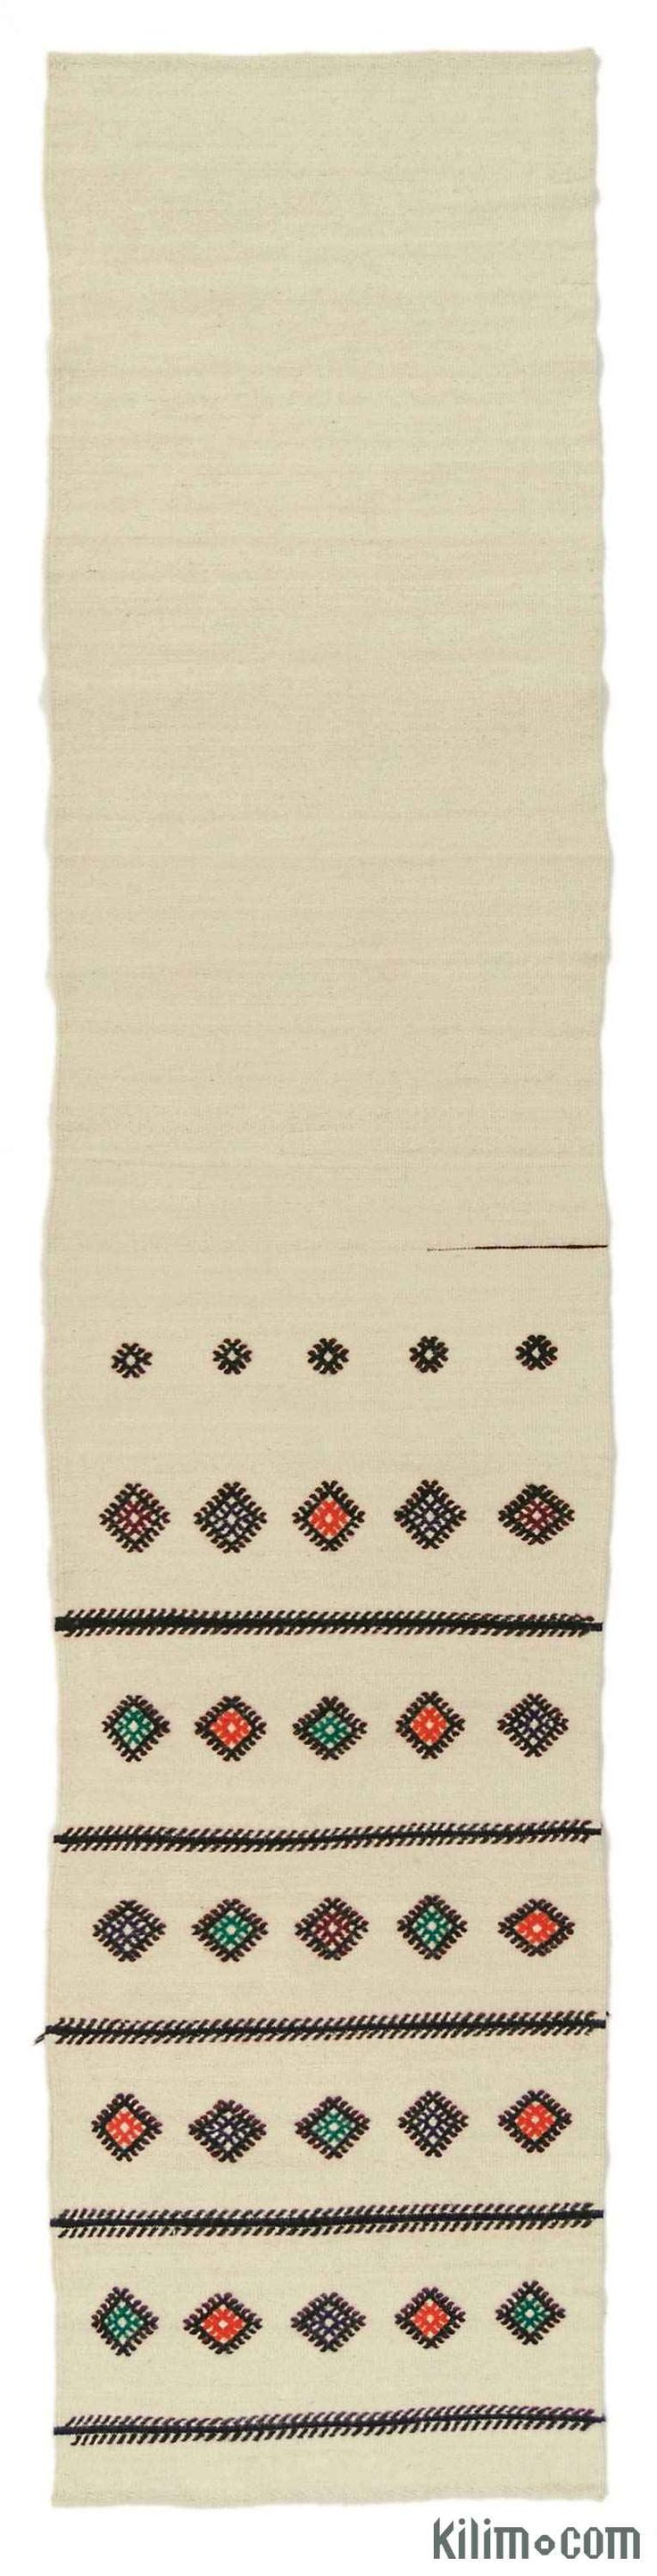 Vintage kilim runner rug handwoven in Turkey in 1960's. This tribal minimalist rug with jijim weavings is in very good condition.